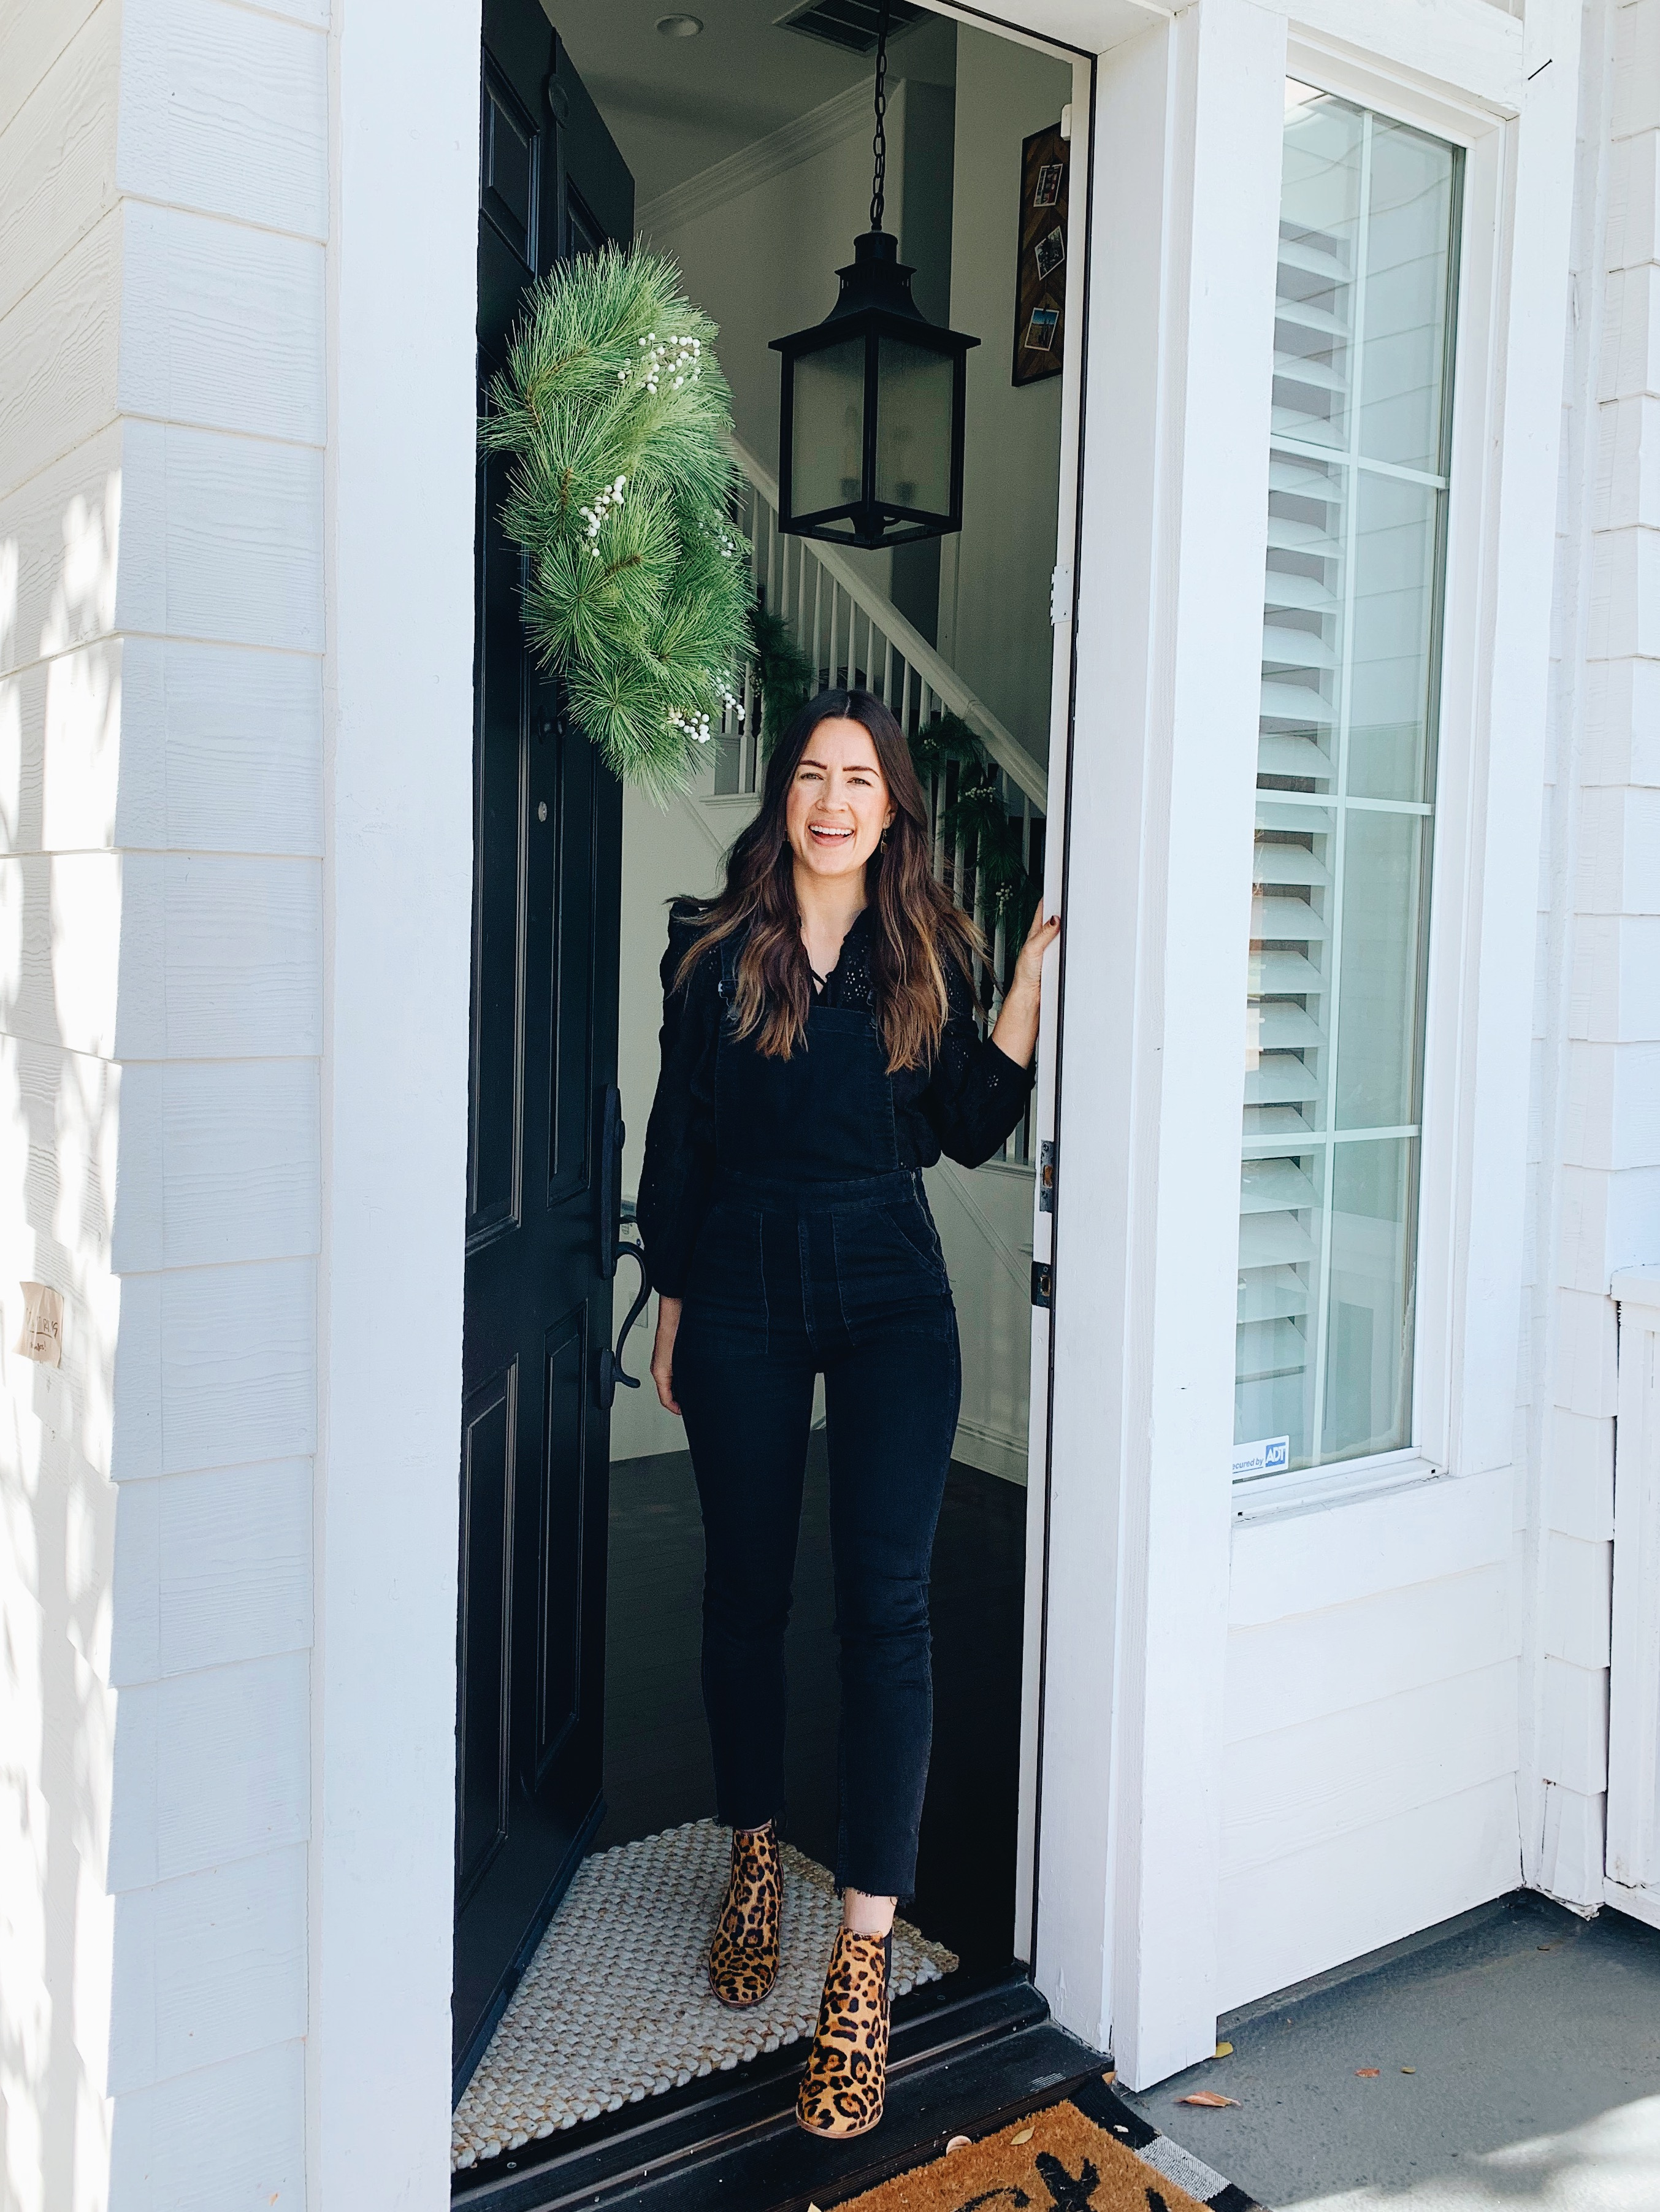 74dfa9c0ed3 3 Ways to Wear a Black Eyelet Top. Over the past year I ve really grown to  love eyelet tops. It took me a while to find one that I felt fit me well  (and ...